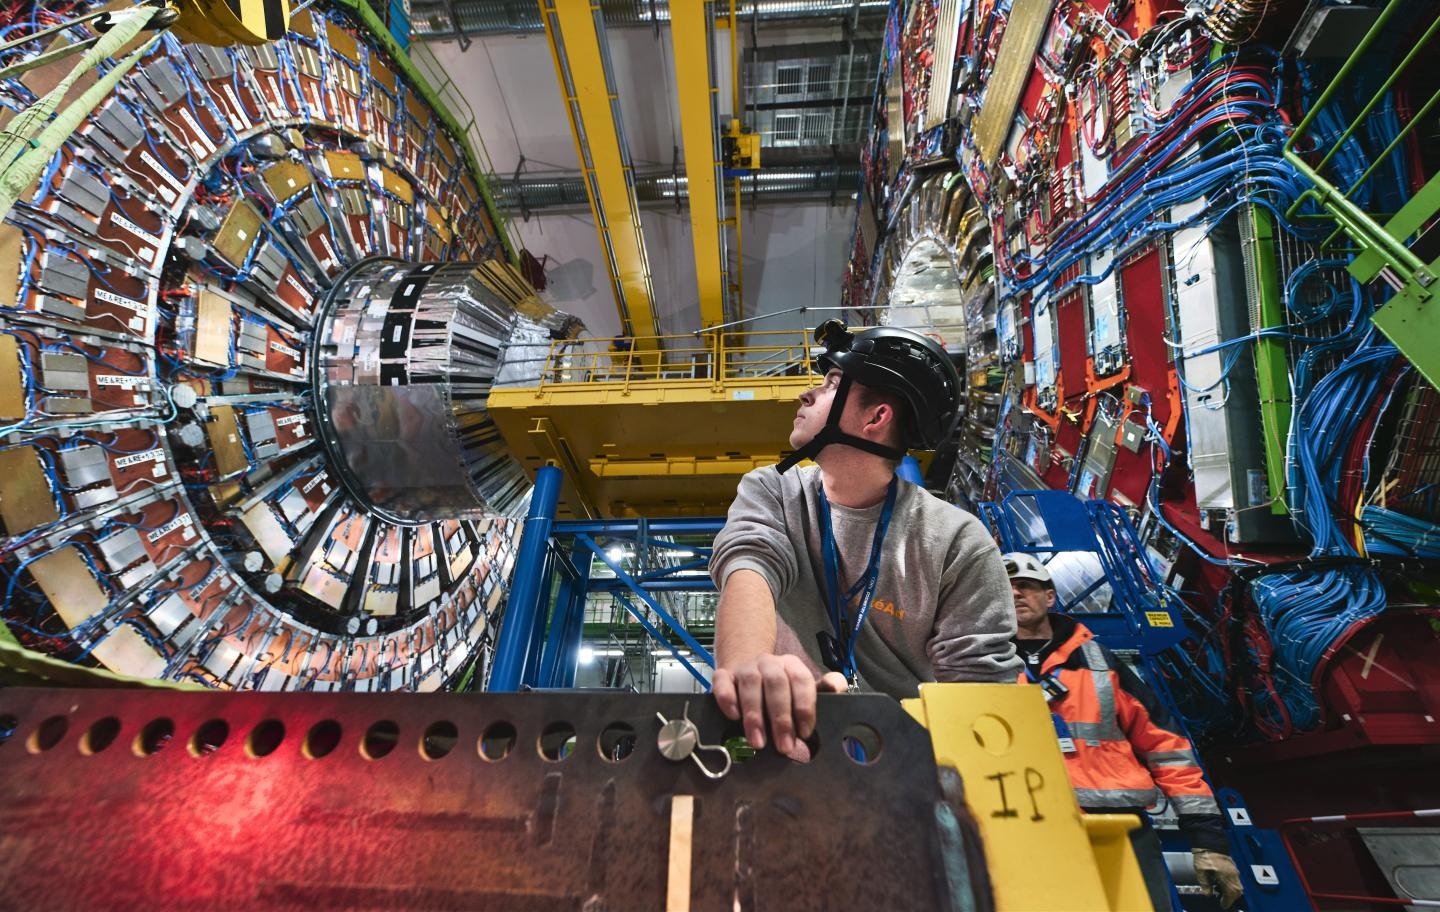 The Large Hadron Collider. Photo via CERN.